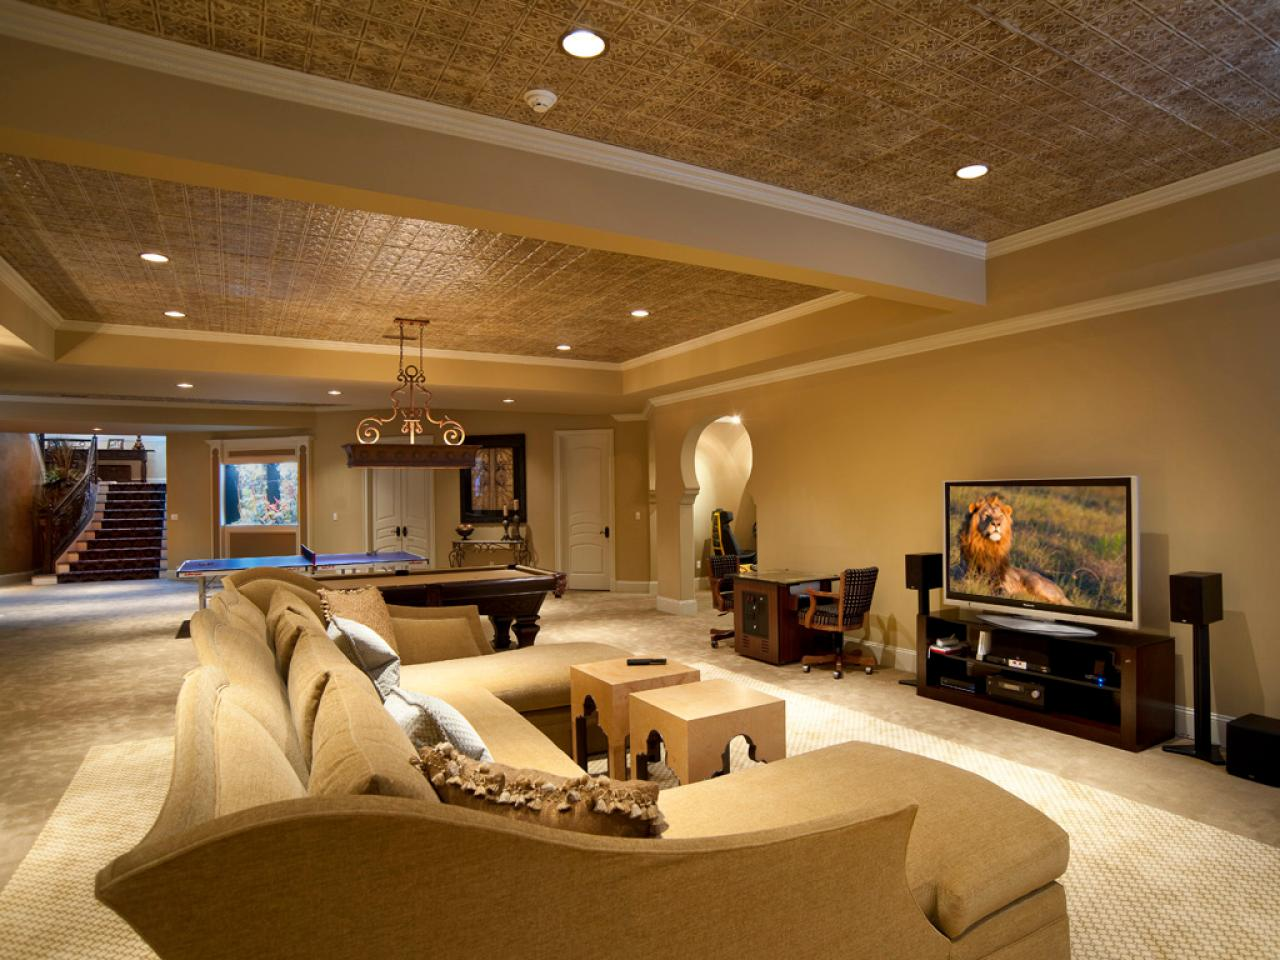 Home Basement Designs Interior Unique Basement Remodel Splurge Vssave  Hgtv Design Inspiration